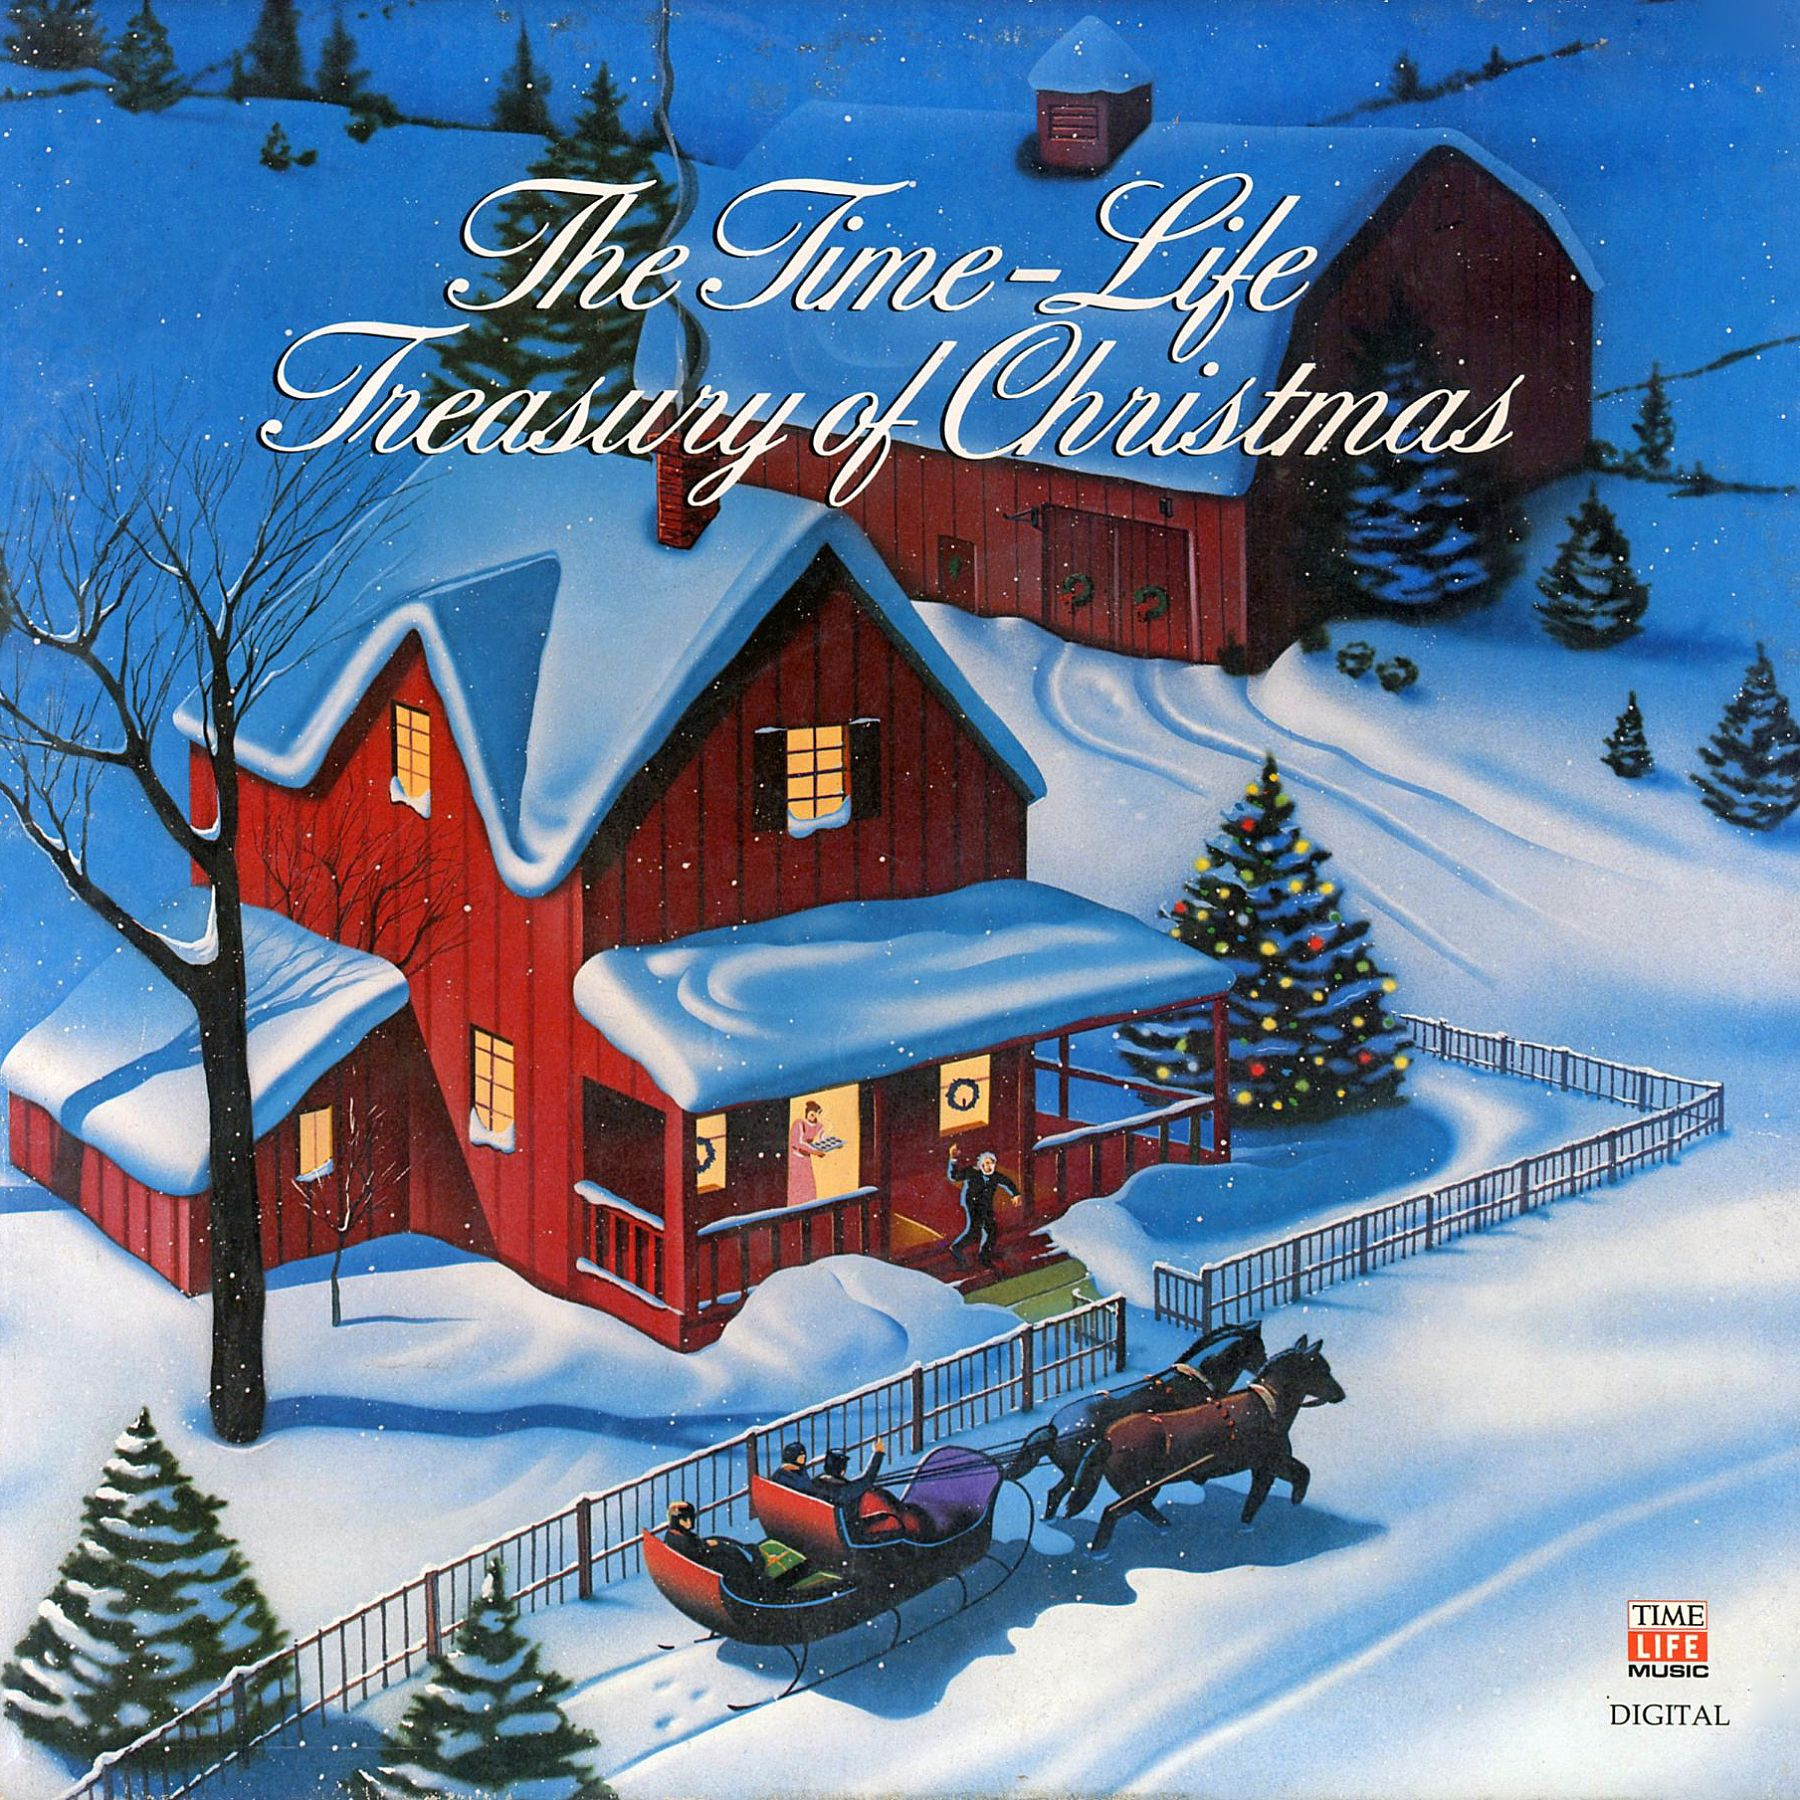 Pin by Christopher M Wall on EVERYTHING CHRISTMAS! | Pinterest | Barn